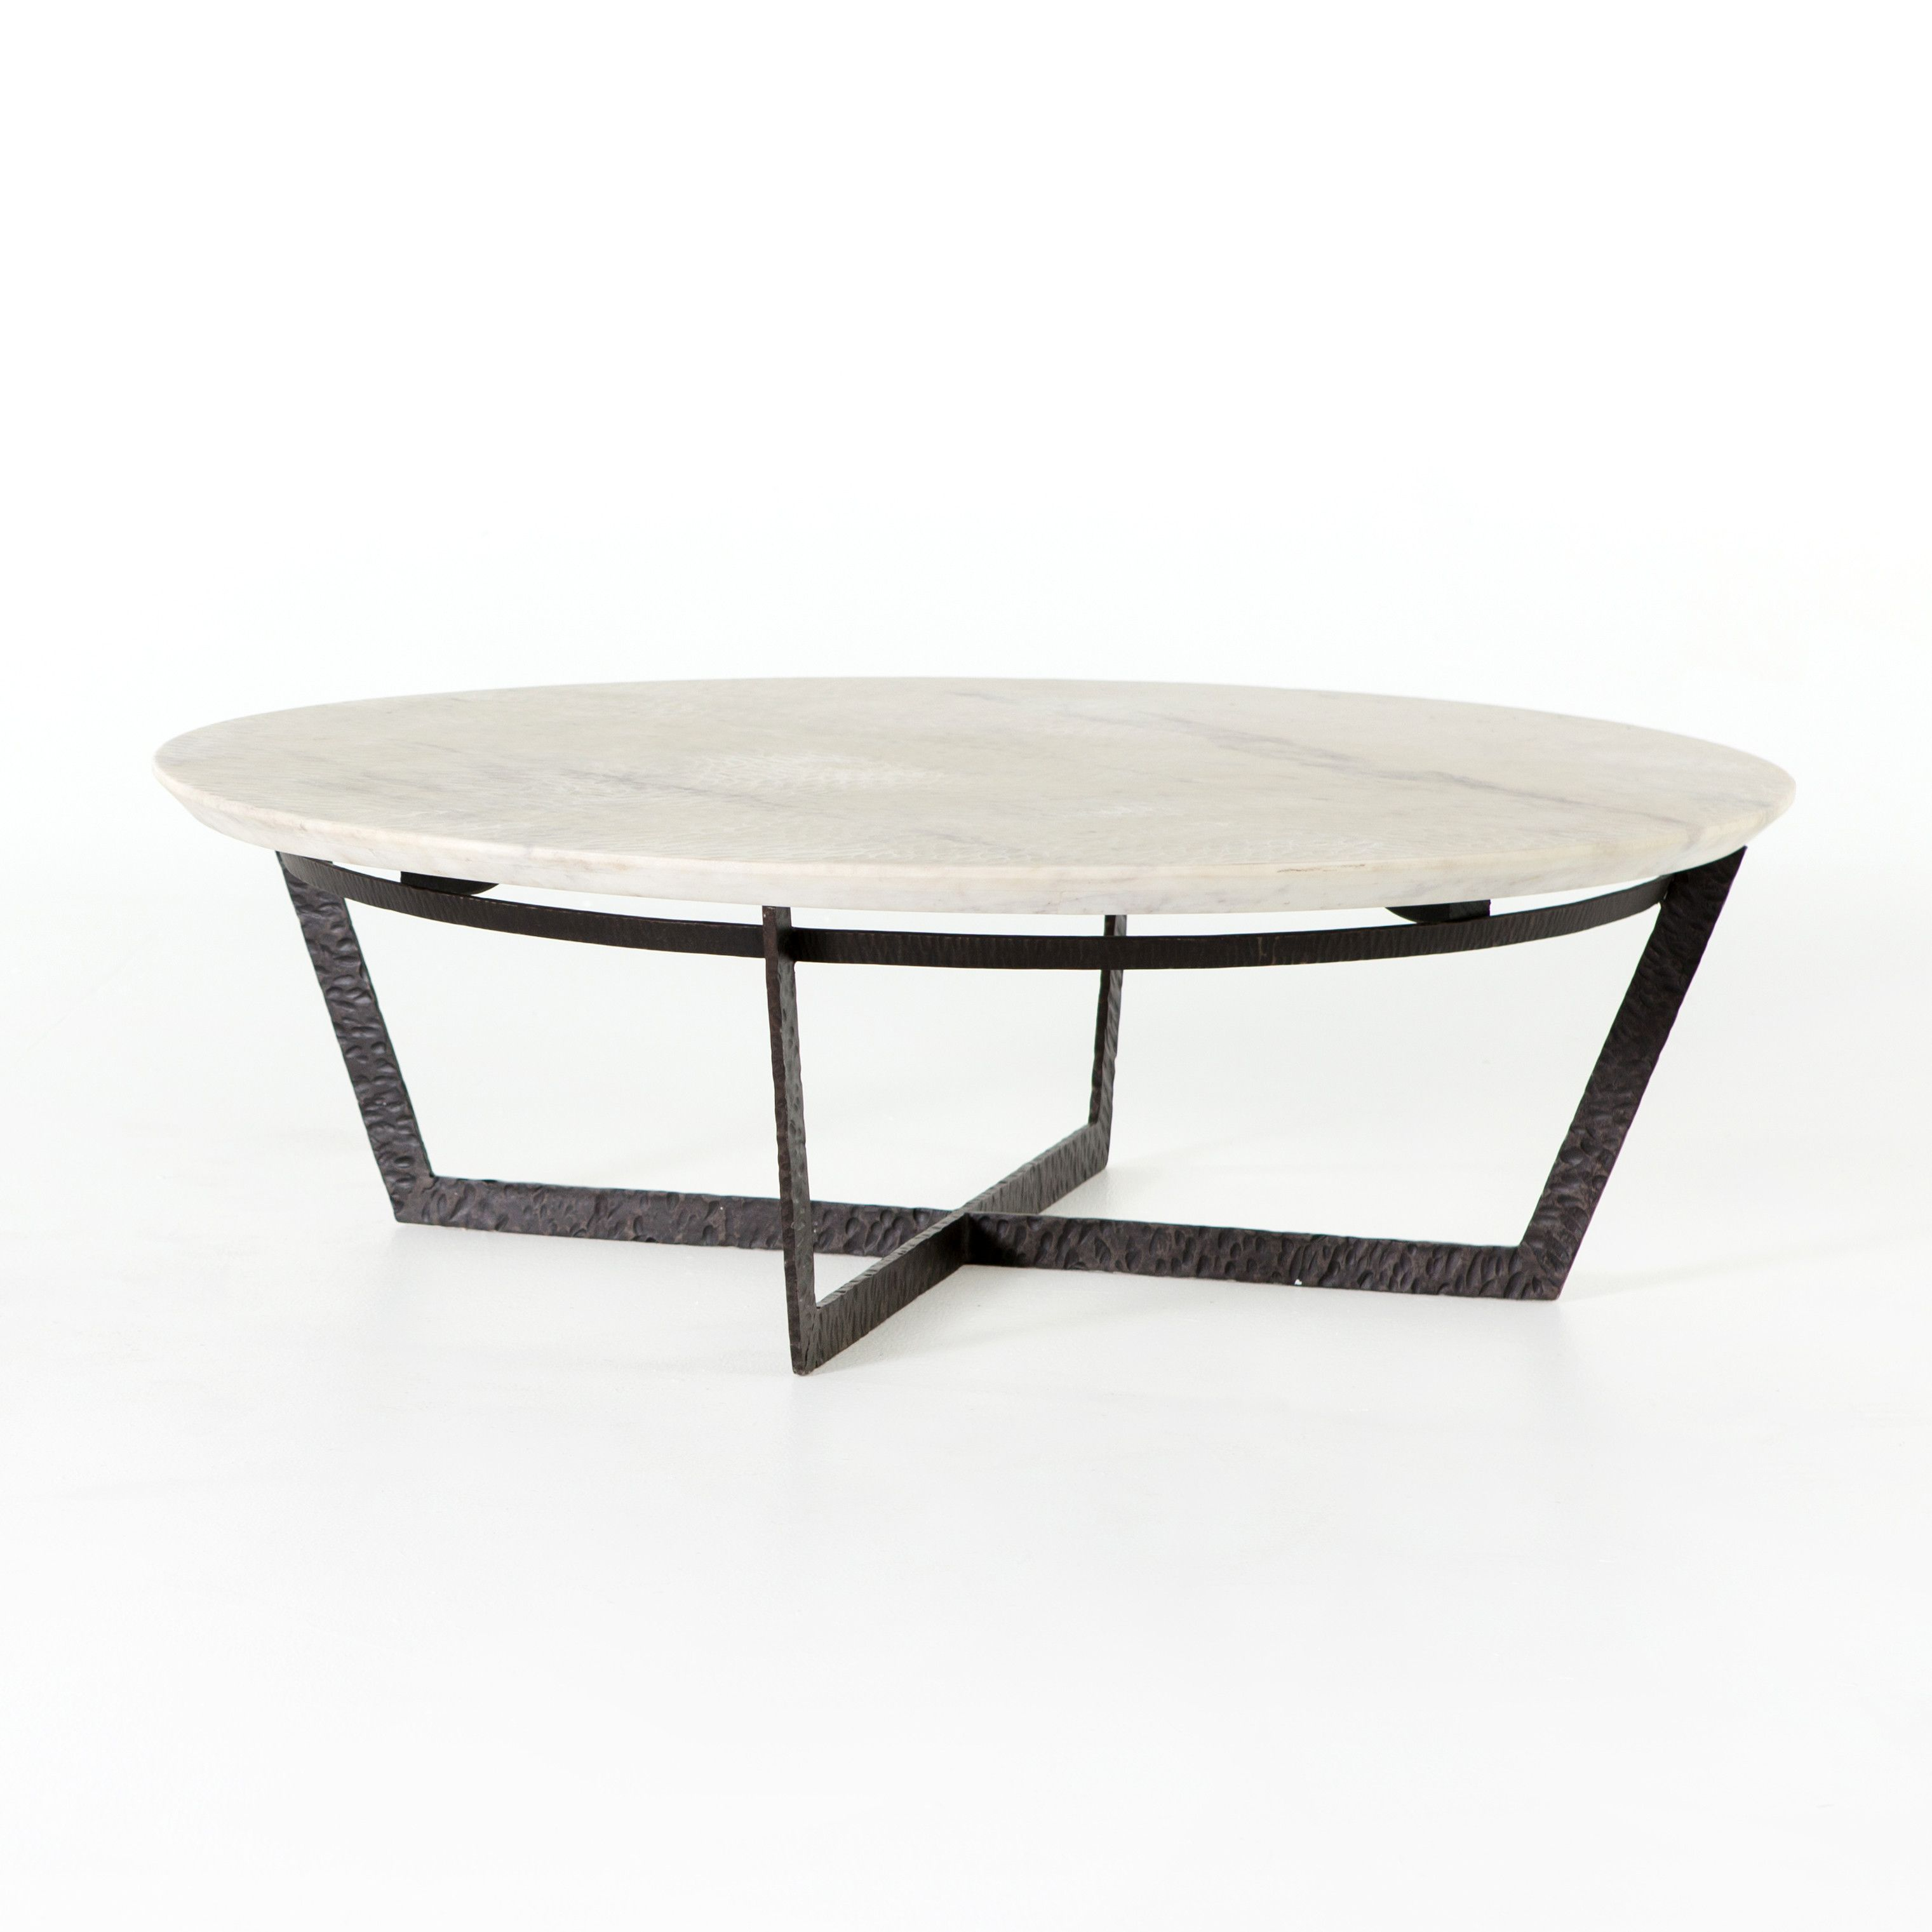 Isd 0199 Felix Round Coffee Table New Four Hands Iron Coffee Table Marble Round Coffee Table Round Coffee Table [ 3042 x 3042 Pixel ]